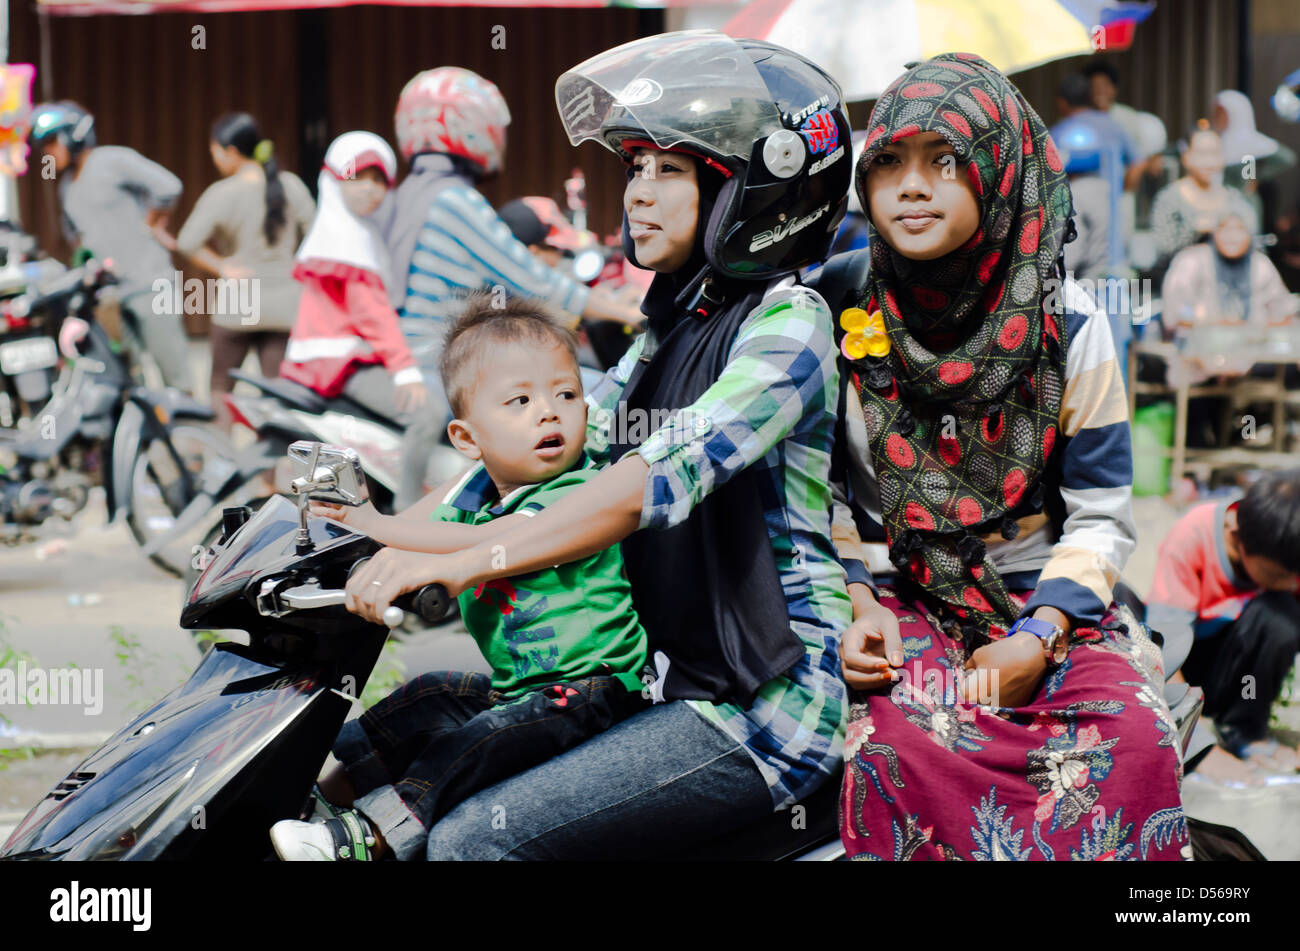 Indonesian street scene of two women and infant boy on a motorbike - Stock Image